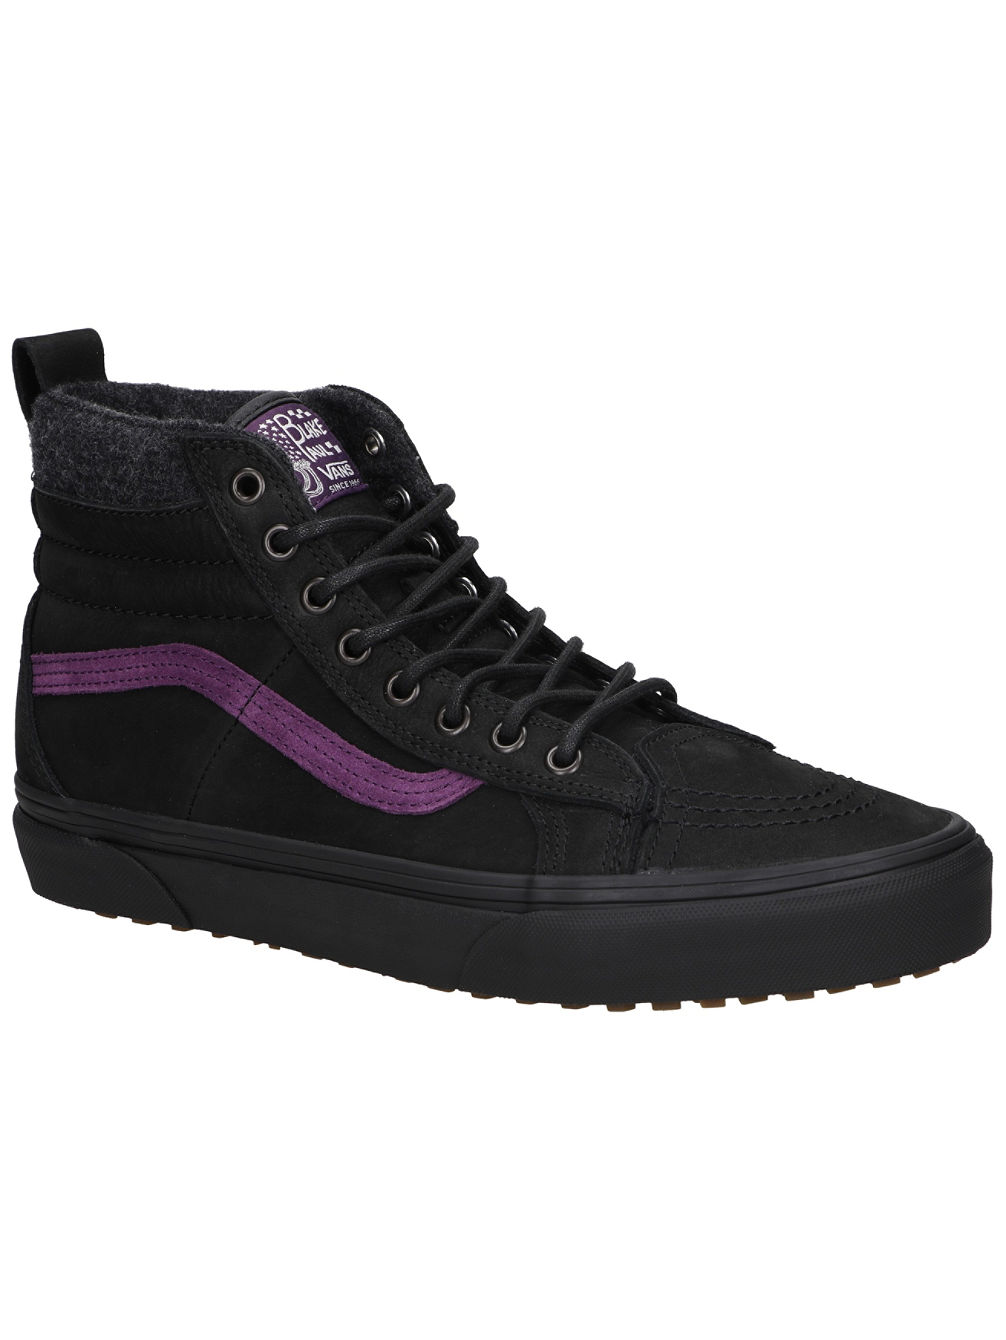 9b67267992 Buy Vans Blake Paul Sk8-Hi 46 MTE DX Shoes online at Blue Tomato